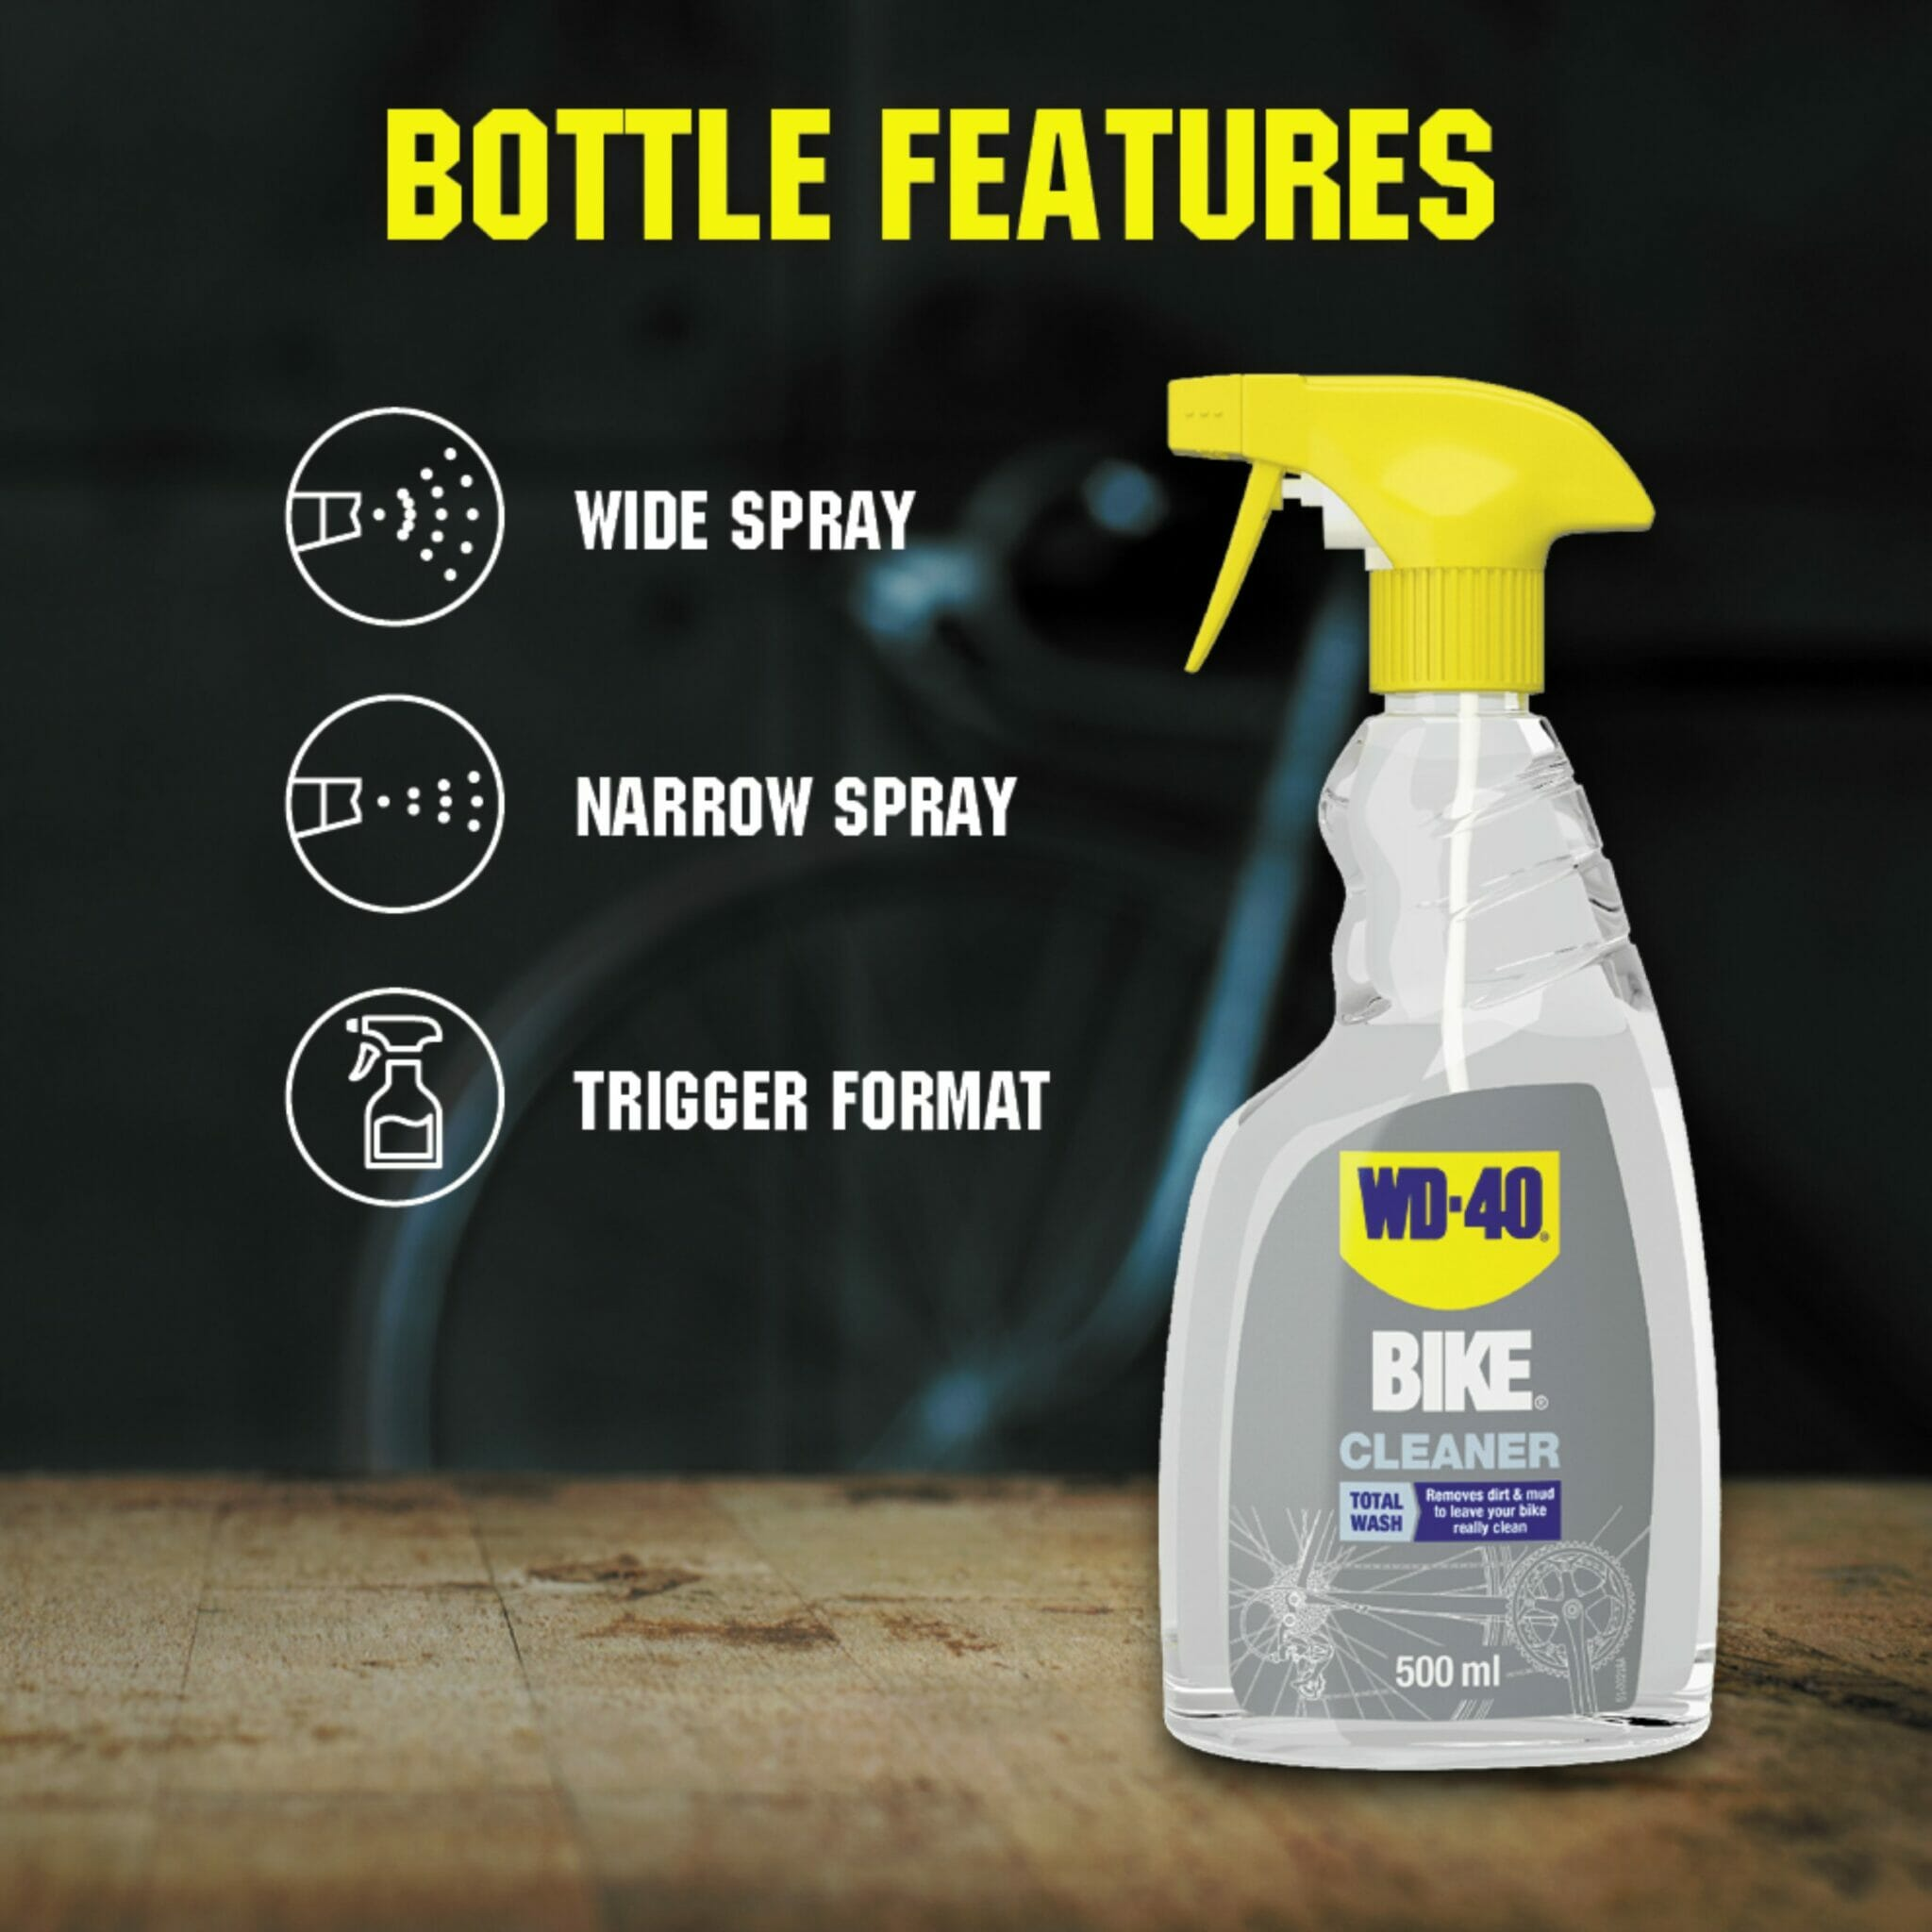 uk wd40 bike cleaner 500ml bottle features lifestyle